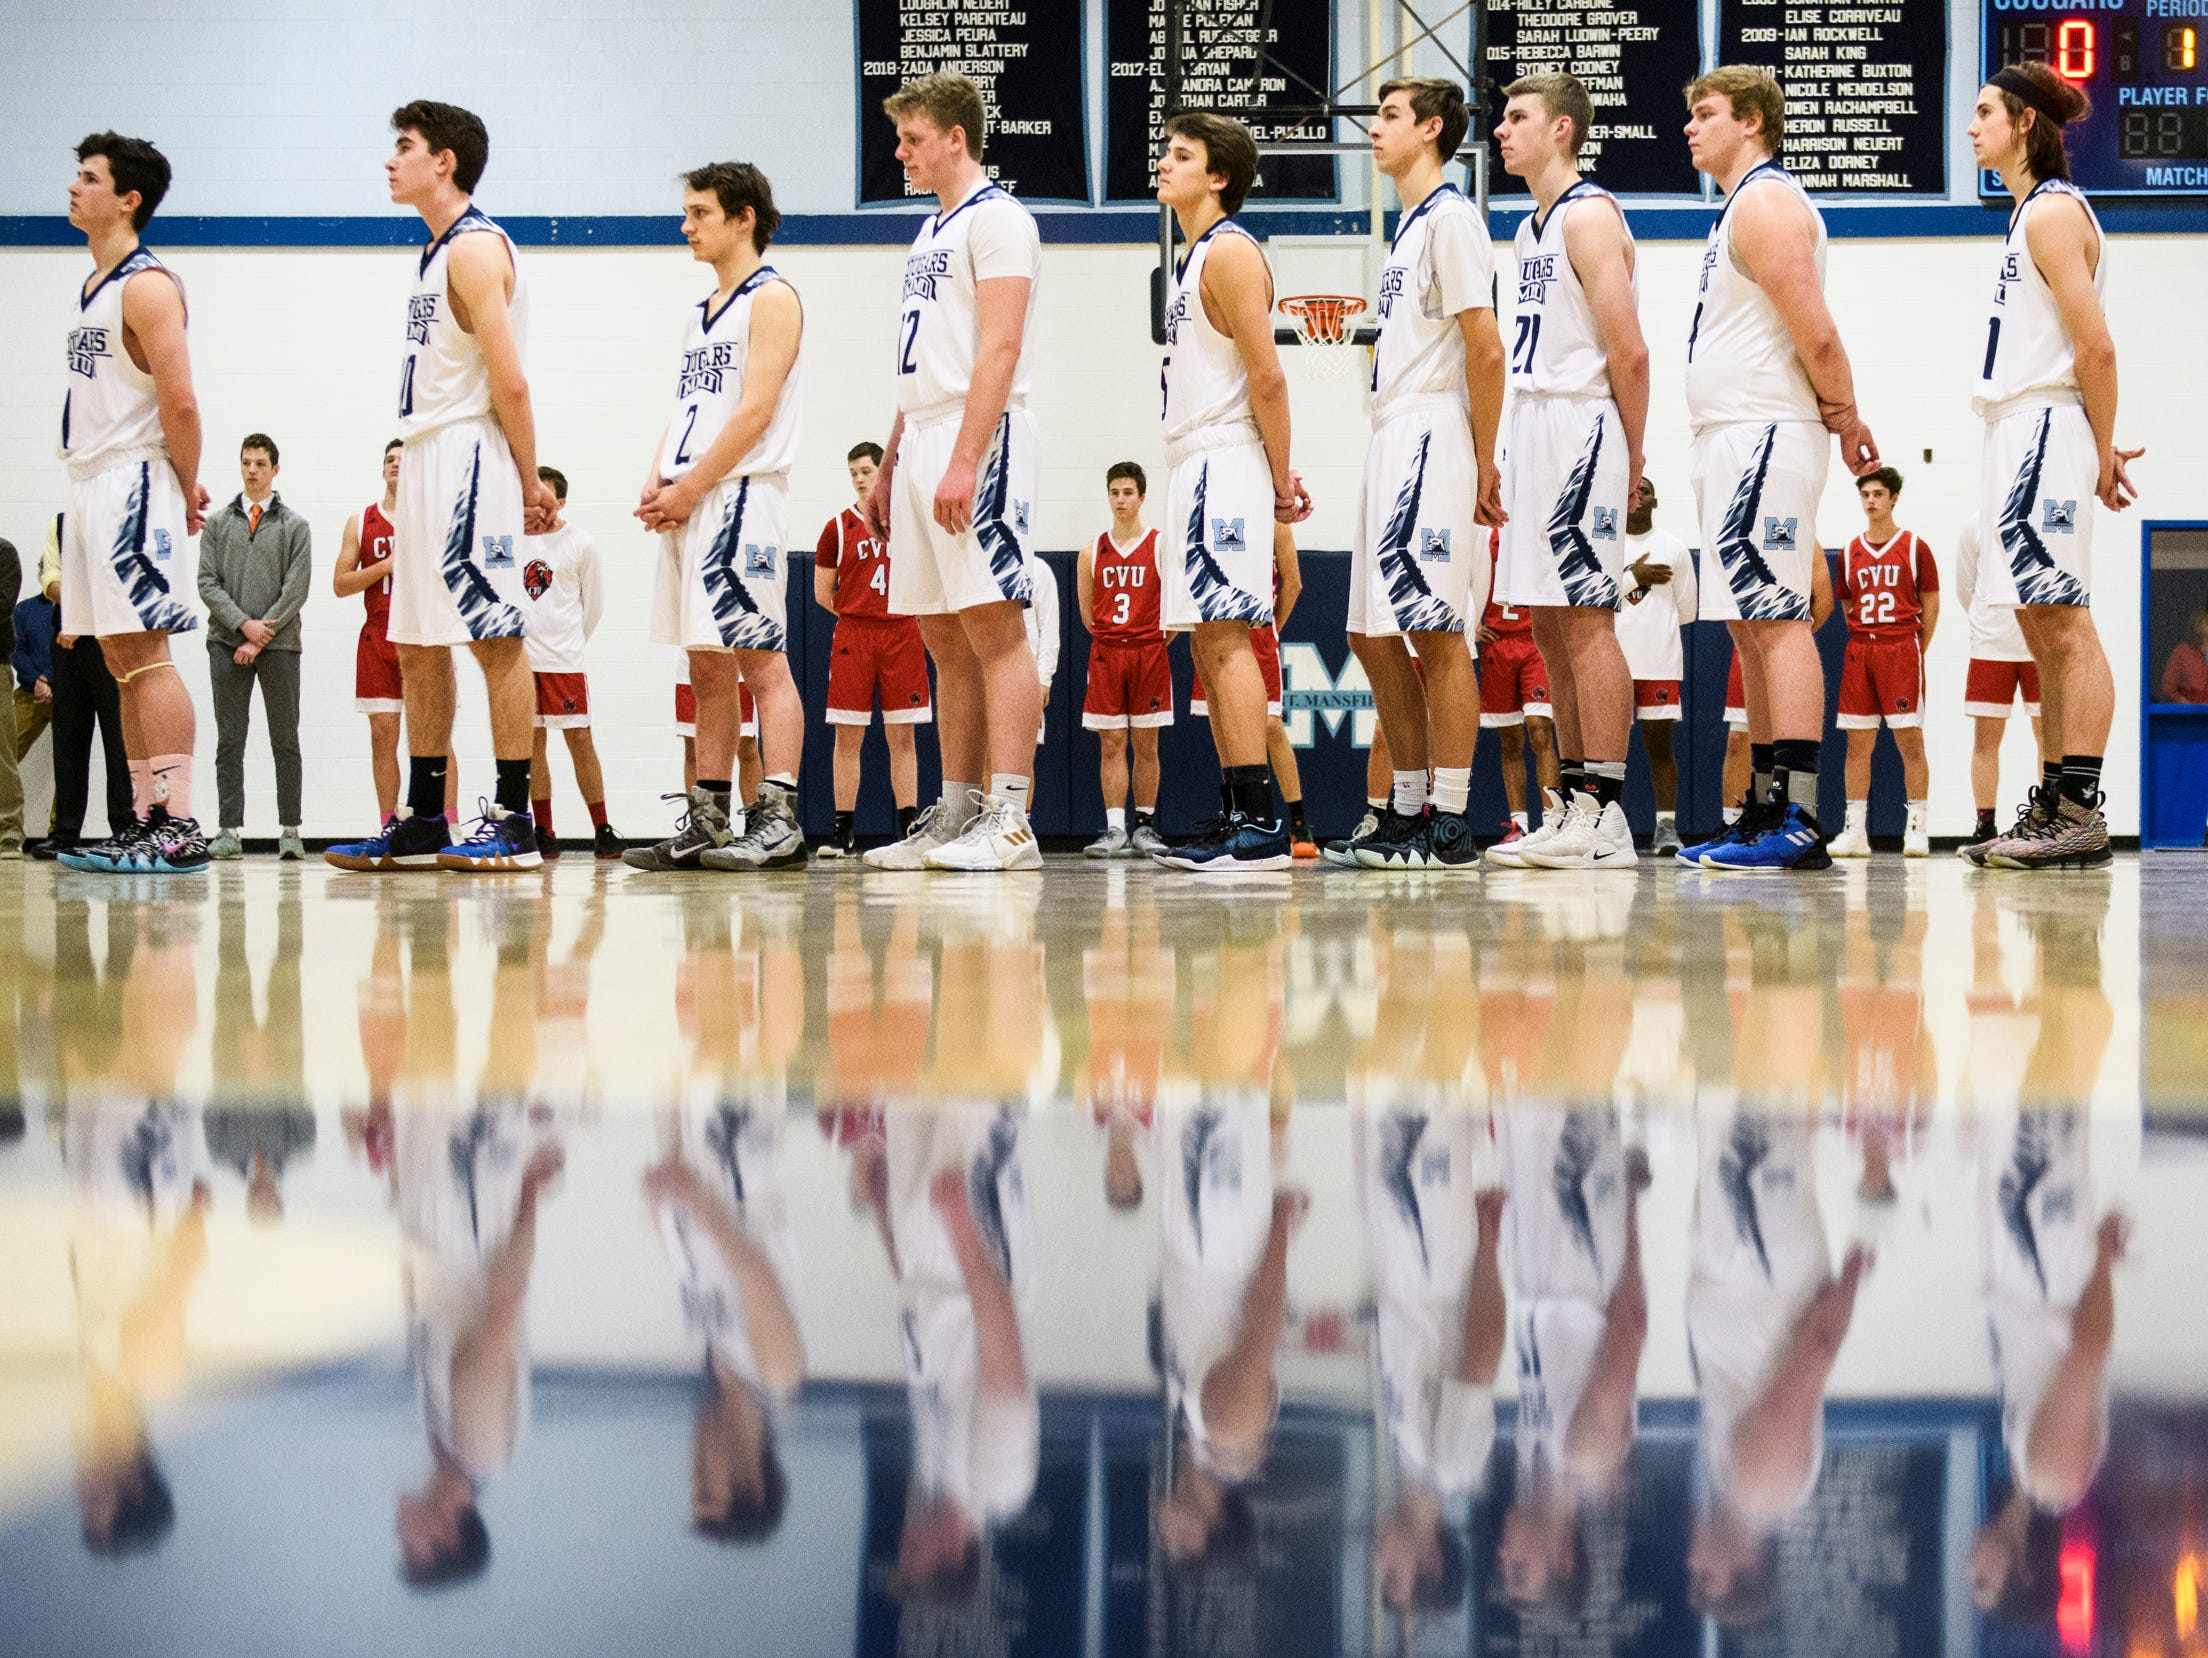 The teams listen to the Nation Anthem during the boys basketball game between the Champlain Valley Union Redhawks and the Mount Mansfield Cougars at MMU High School on Tuesday night January 22, 2019 in Jericho.